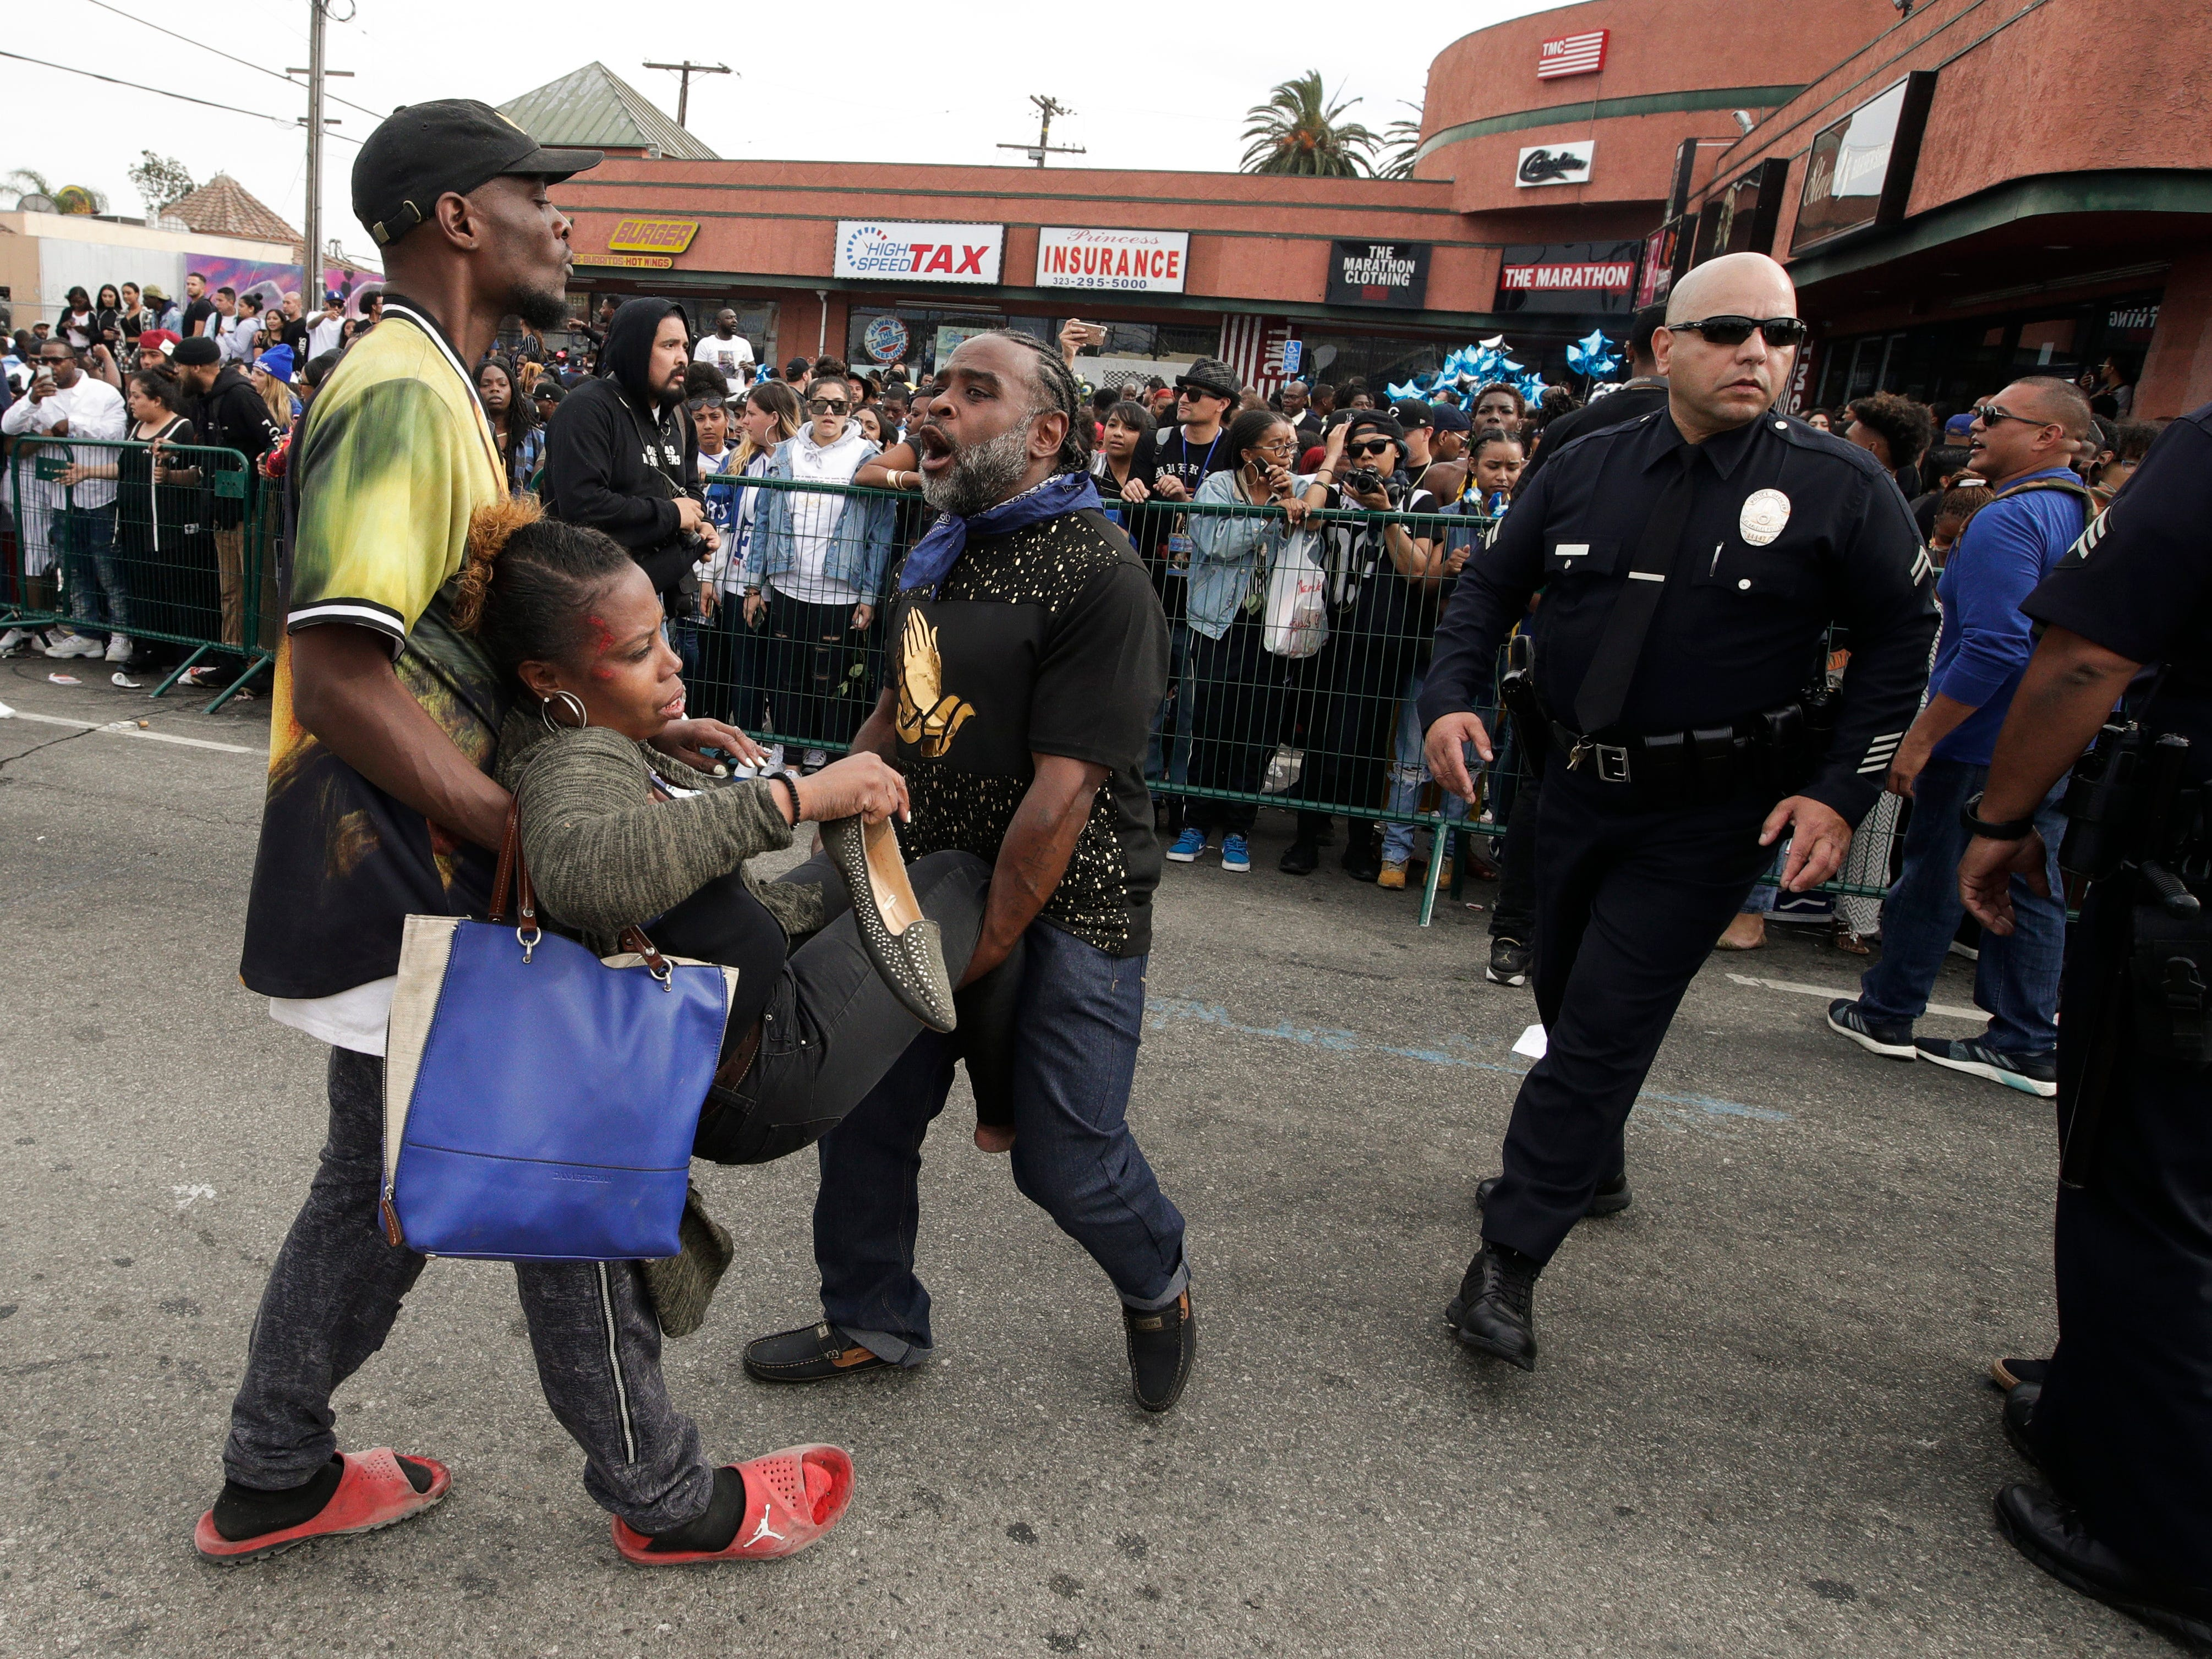 Two men carry a woman injured in a stampede as people gather to watch a hearse carrying the casket of slain rapper Nipsey Hussle Thursday, April 11, 2019, in Los Angeles. The 25-mile procession traveled through the streets of South Los Angeles after a memorial service, including a trip past Hussle's clothing store, The Marathon, rear, where he was gunned down March 31.